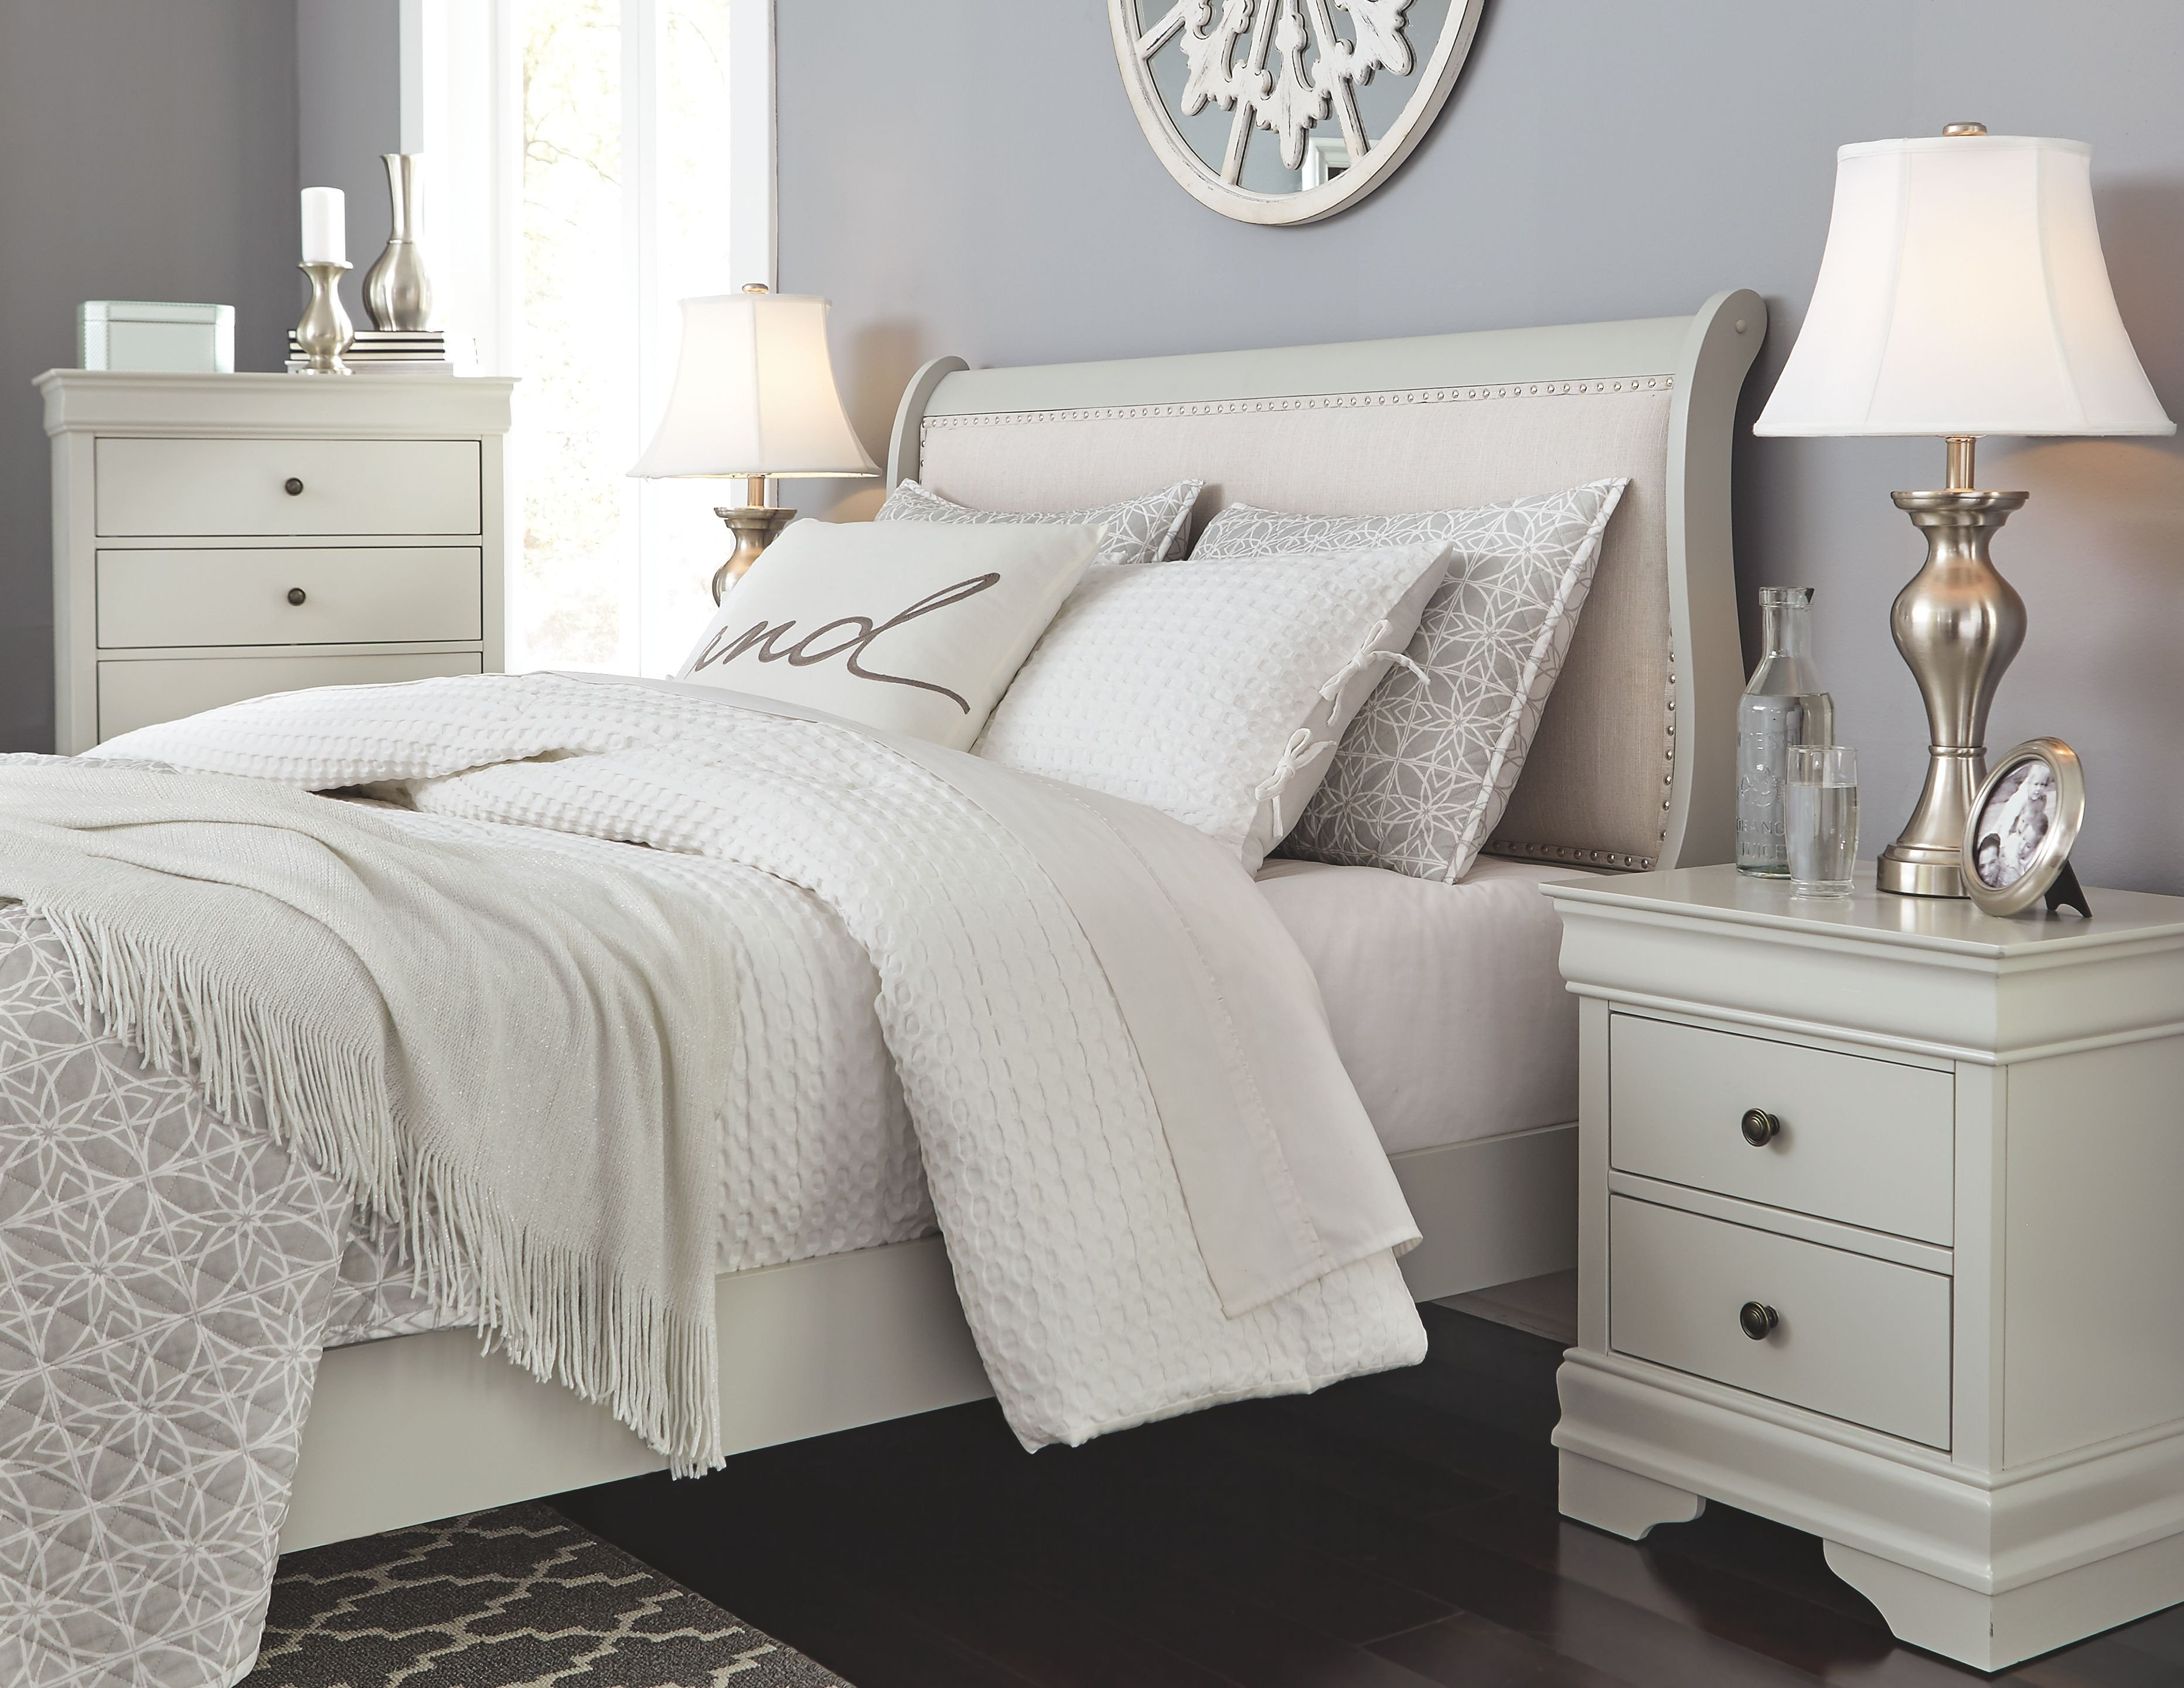 Teen Girl Bedroom Set Beautiful Jorstad Full Bed with 2 Nightstands Gray